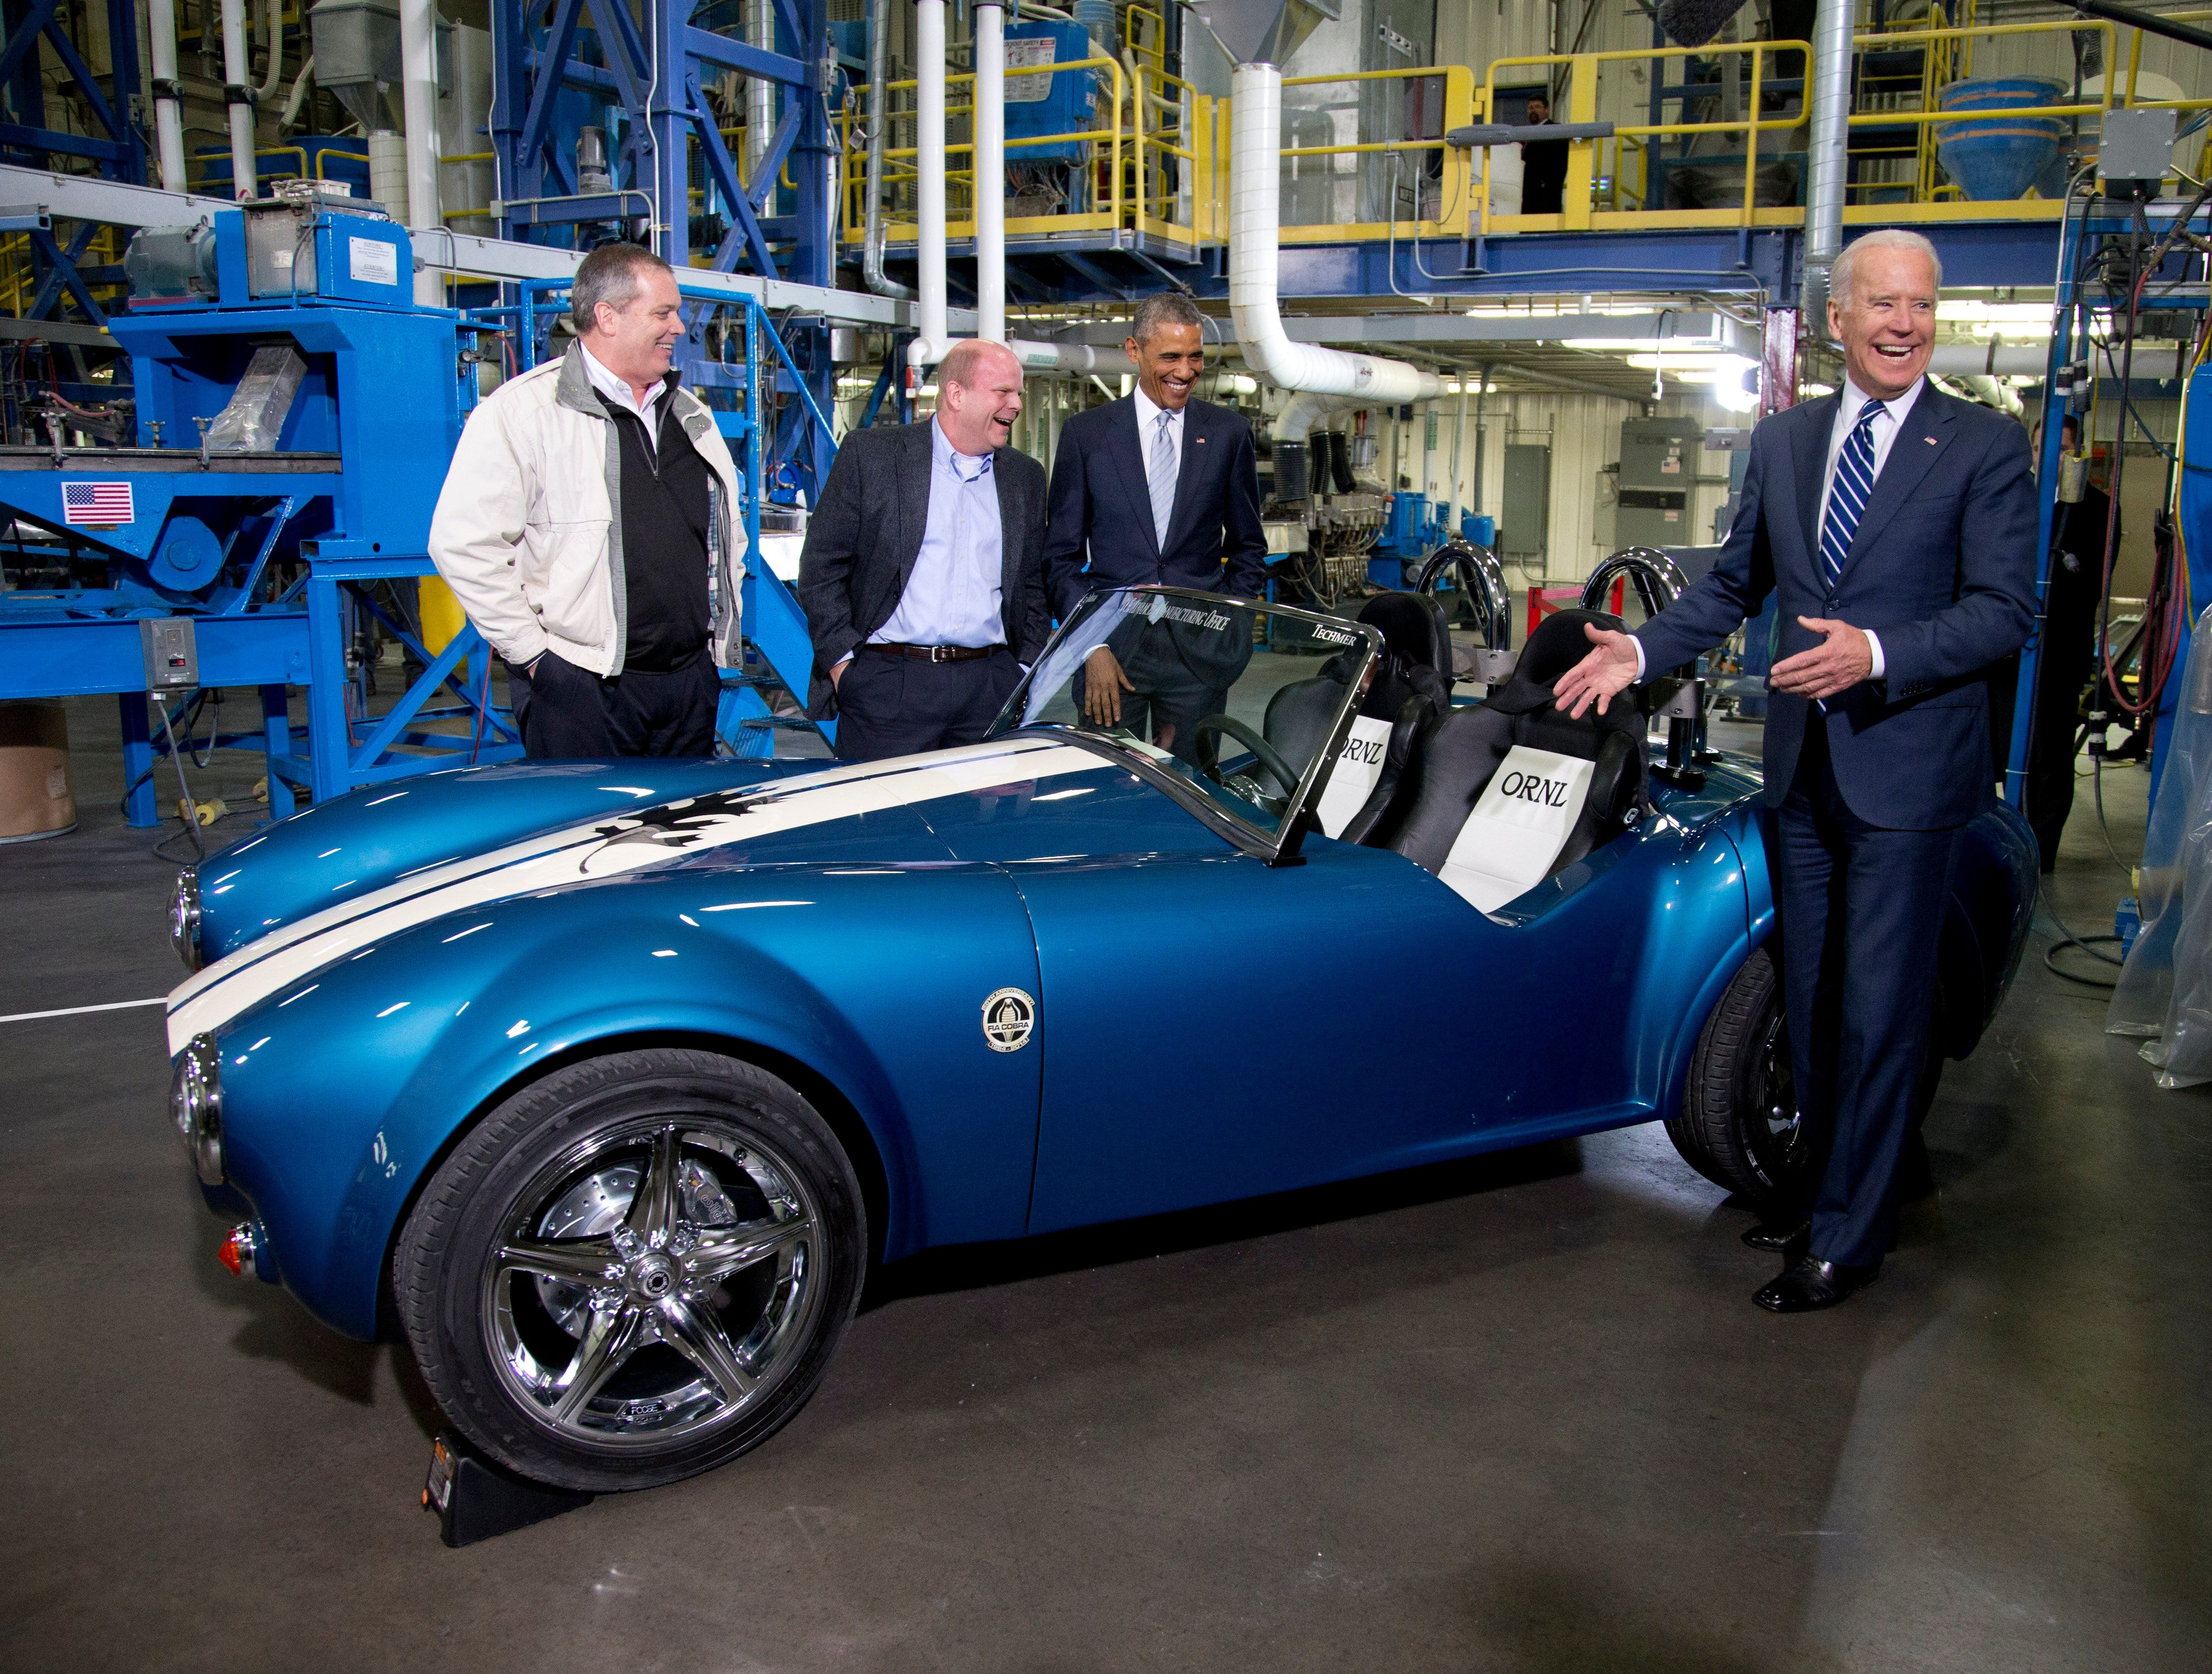 From left, Tom Drye, Managing Director of Techmer ES, Lonnie Love, Shelby Cobra 3D print designer and manufacturer at Oak Ridge National Lab, President Barack Obama, and Vice President Joe Biden admire a 3D printed Shelby Cobra, at Techmer PM, a plastic fabrication company, Friday, Jan. 9, 2015, in Clinton, Tenn., where the president talked about the administration's efforts to create new, good paying manufacturing jobs. (AP Photo/Carolyn Kaster)